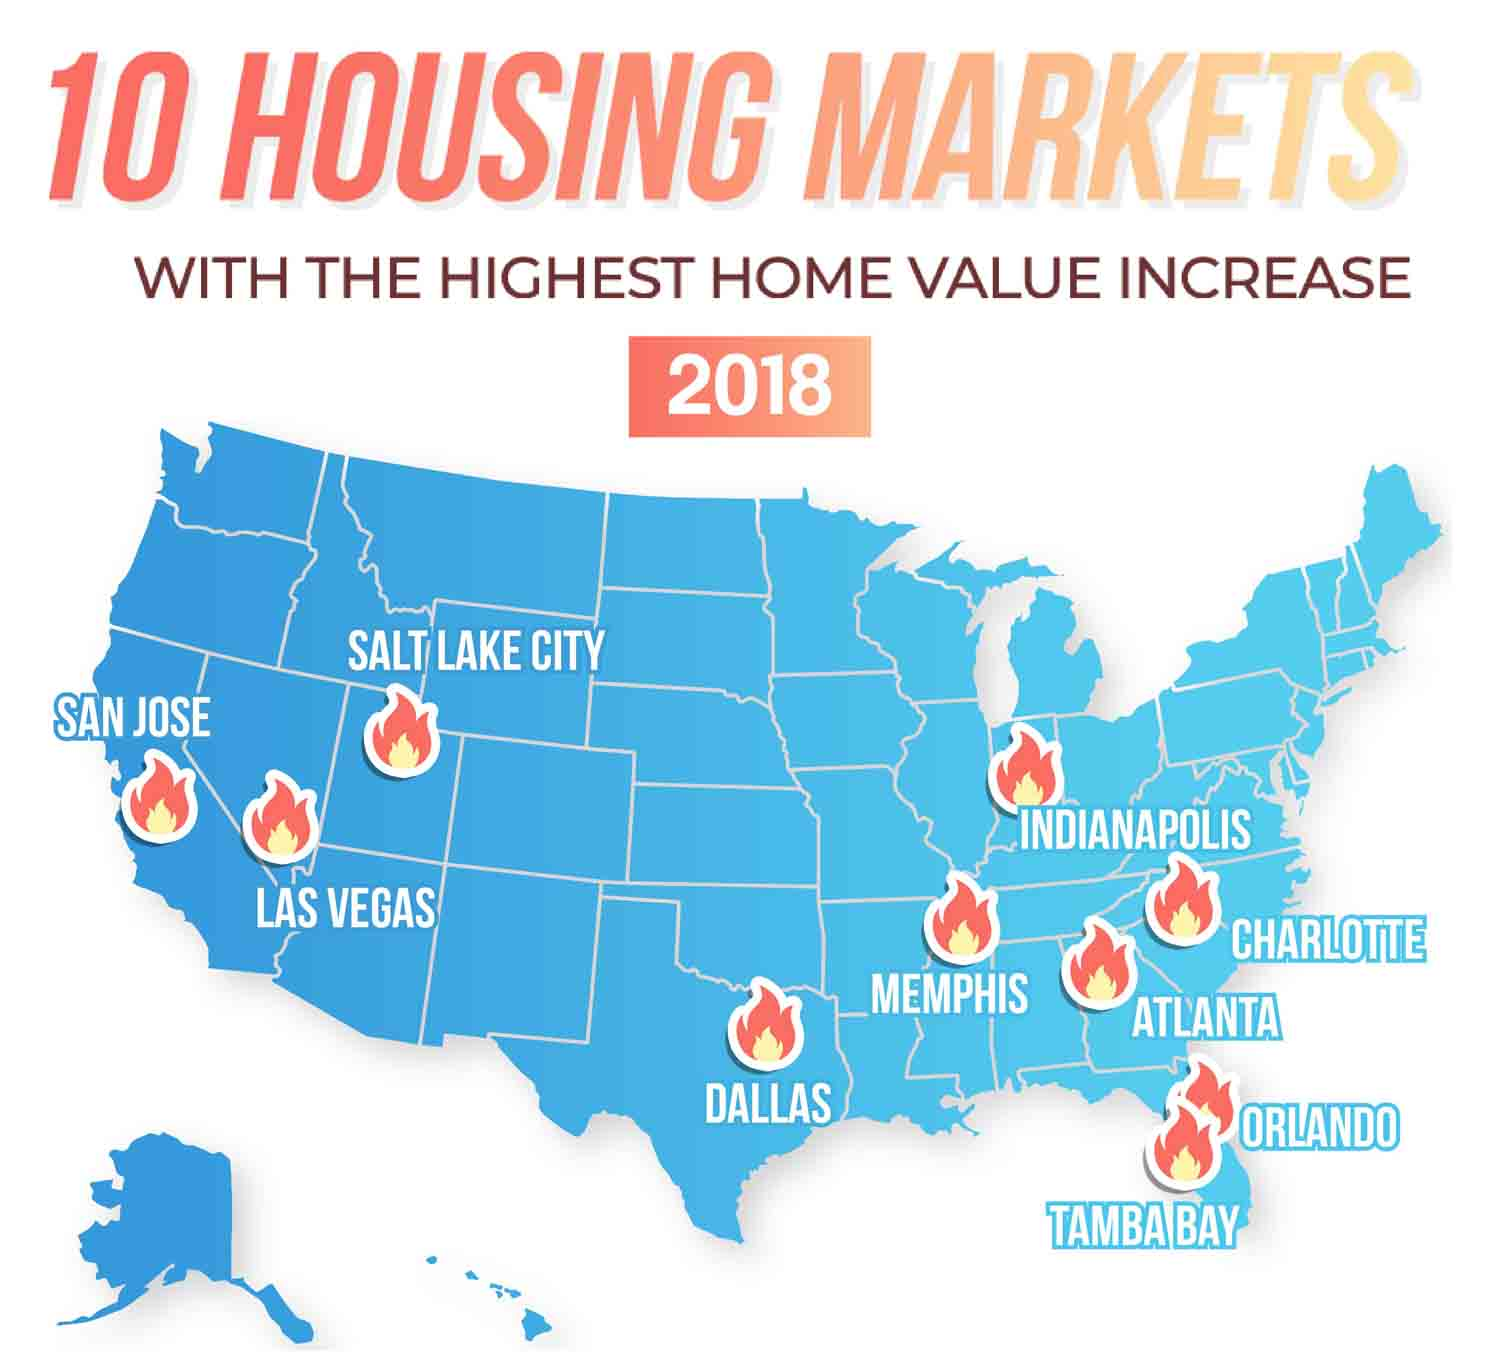 10 Housing Markets With The Highest Home Value Increase in 2018